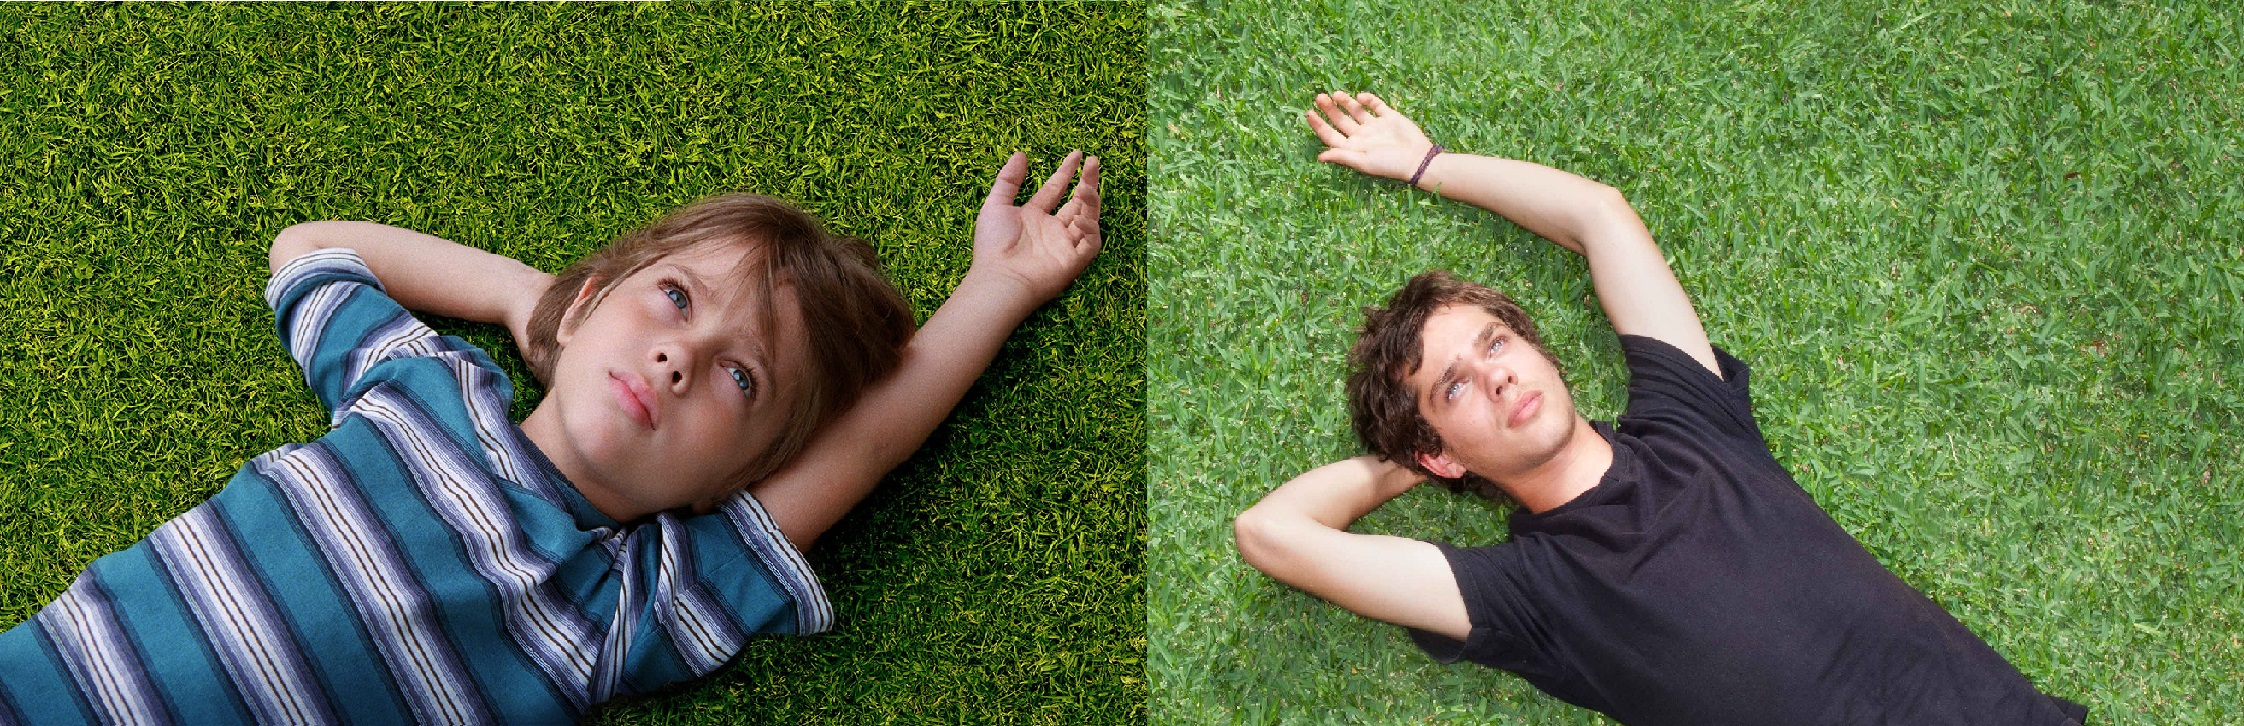 boyhood-compare1